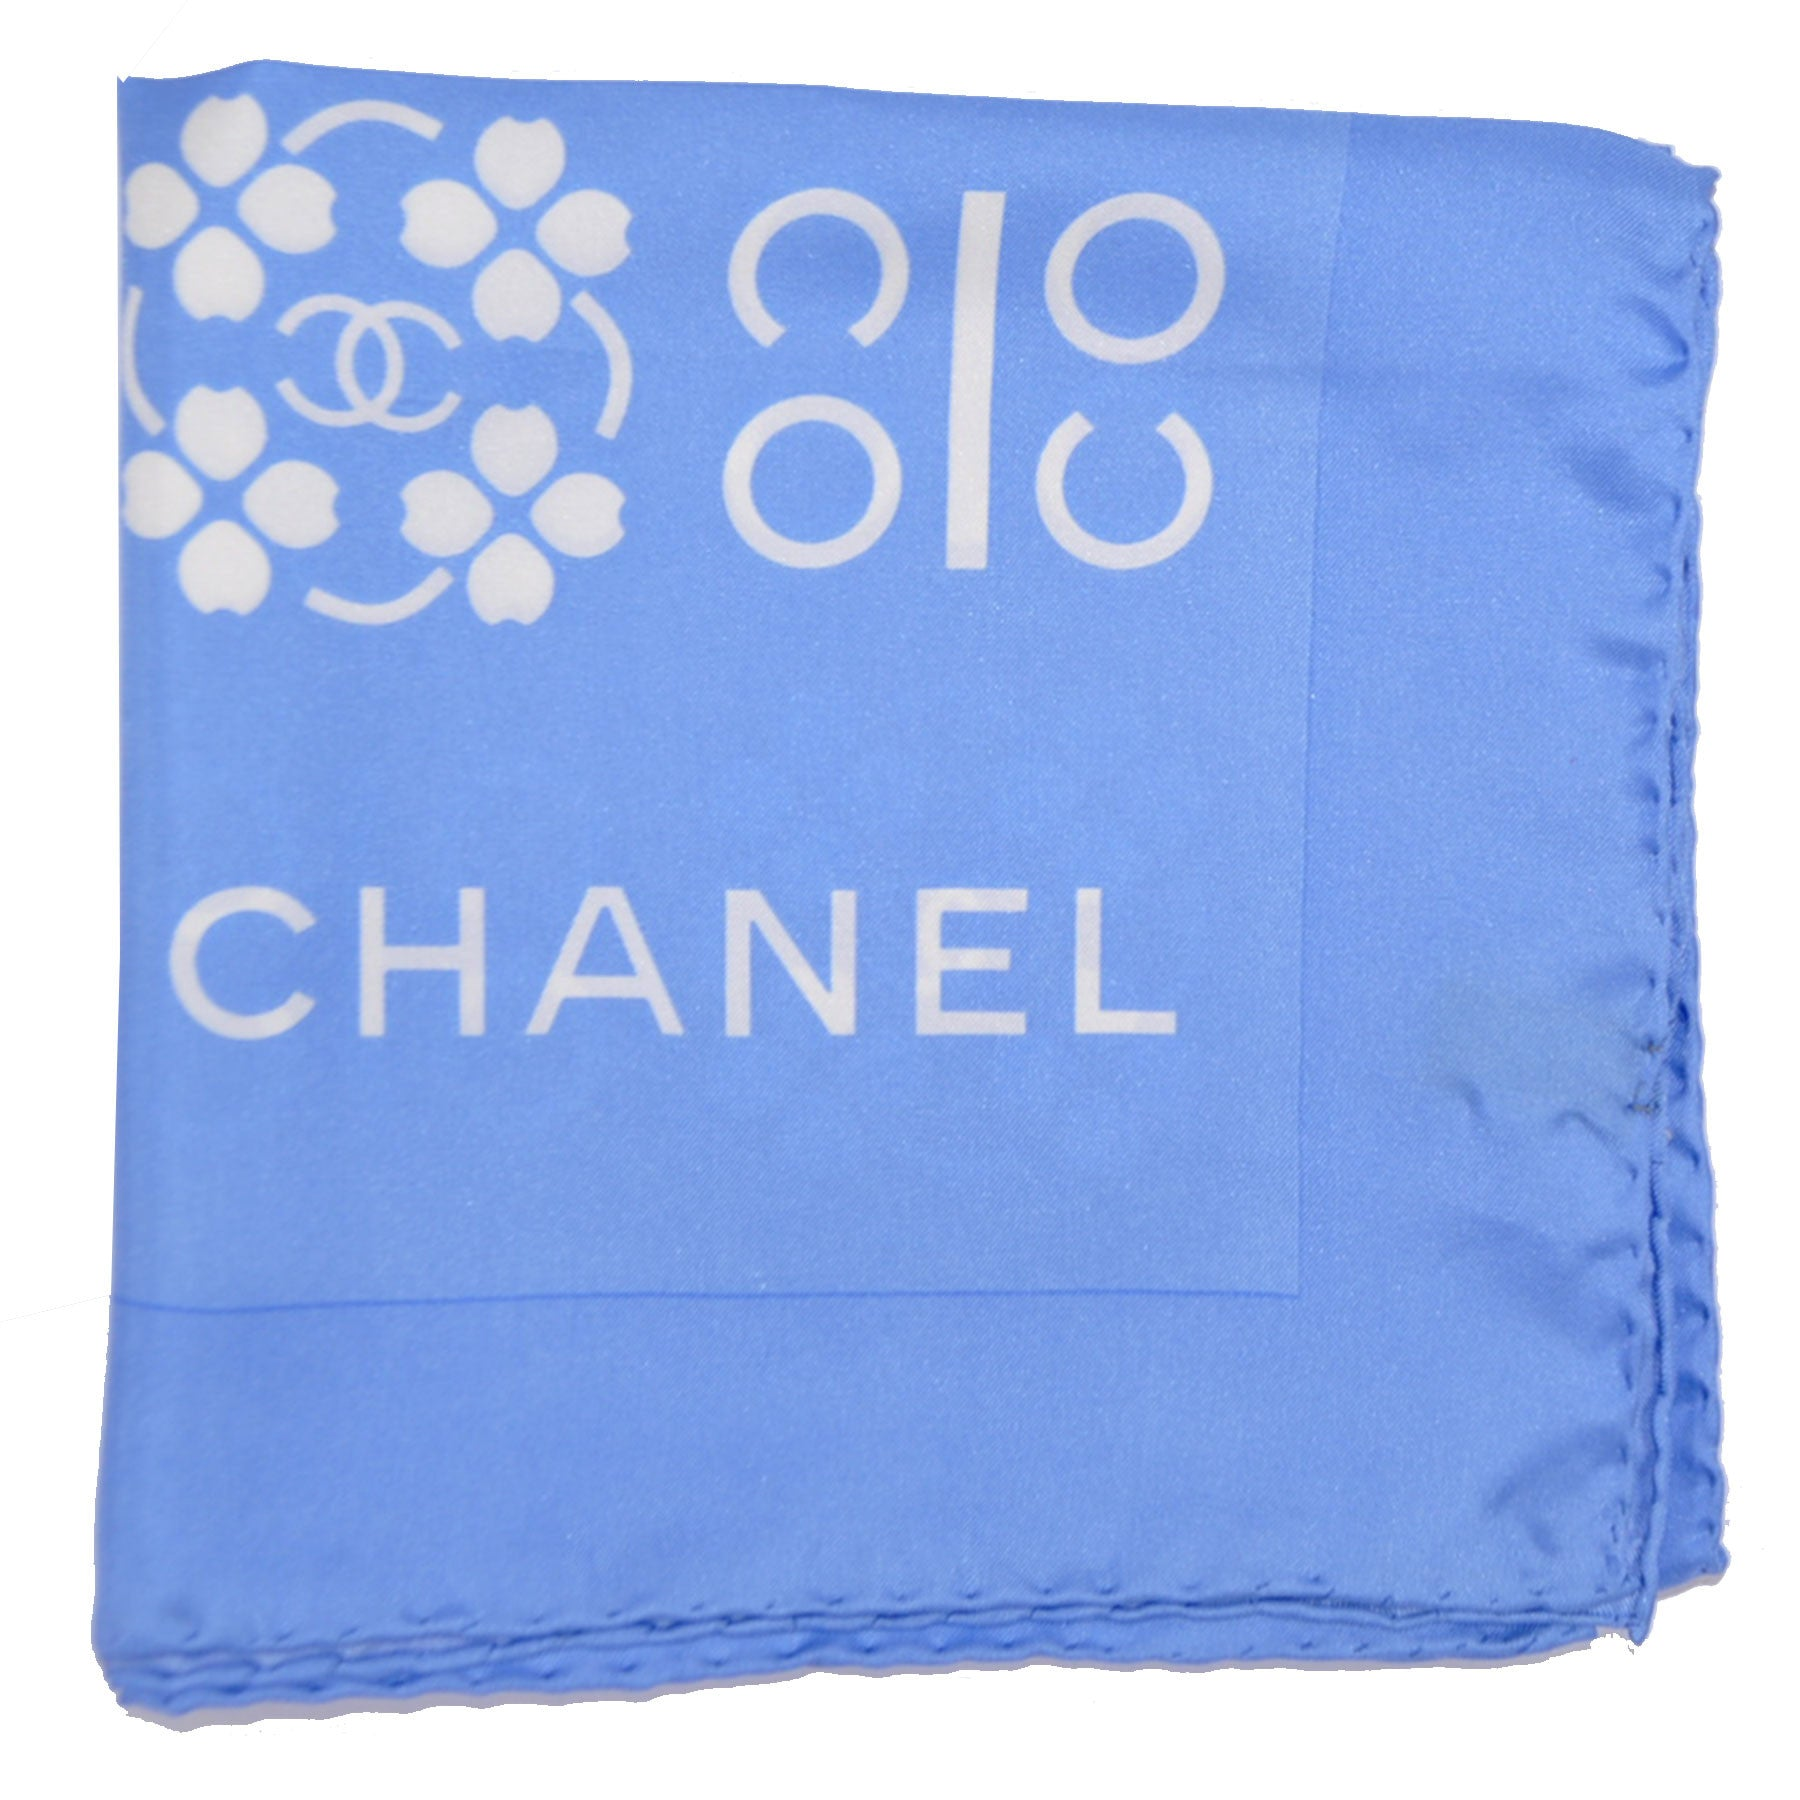 chanel scarf. chanel scarf periwinkle blue logo print silk square